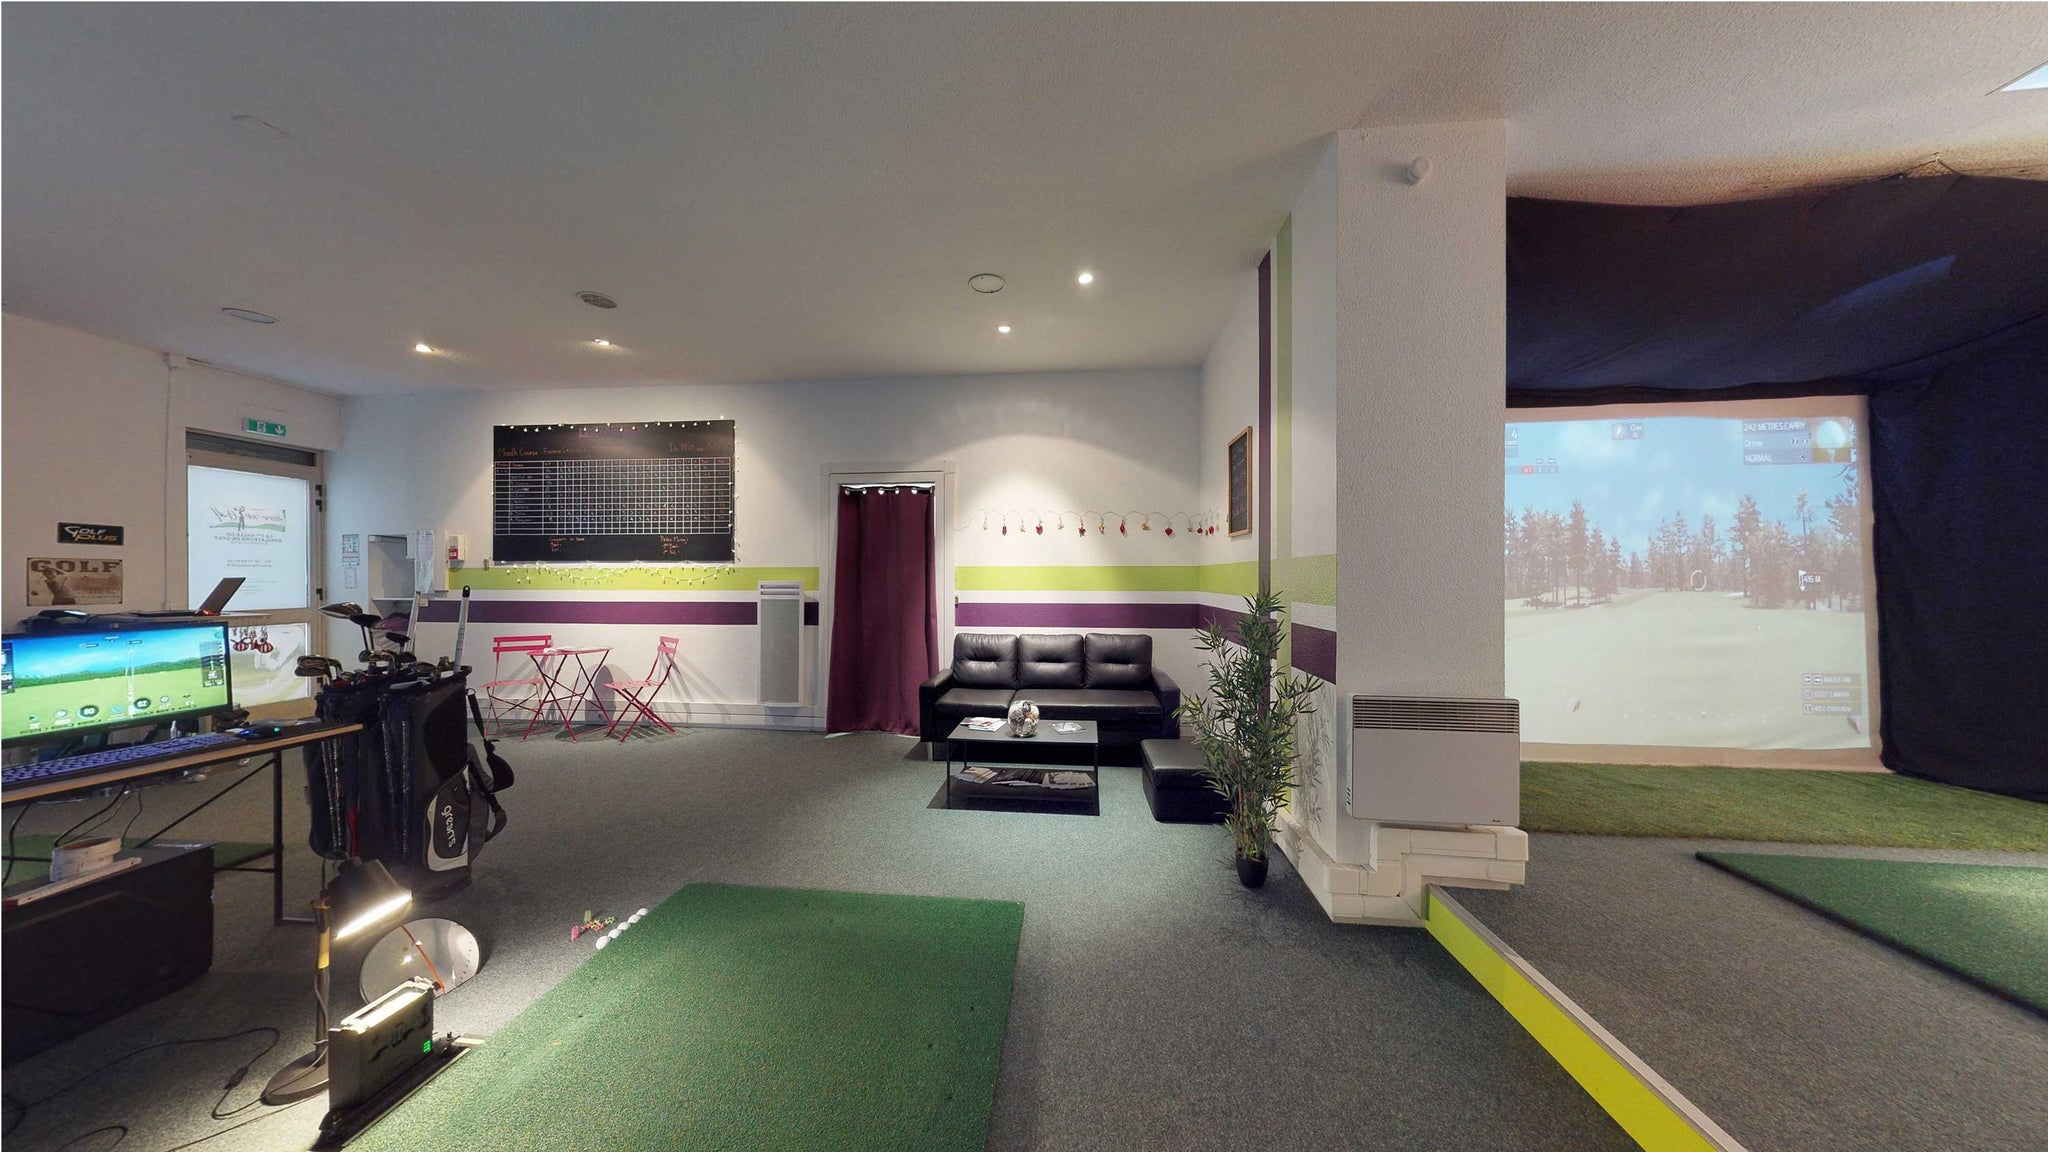 golf indoor toulouse, simulateur de golf toulouse, skytrak